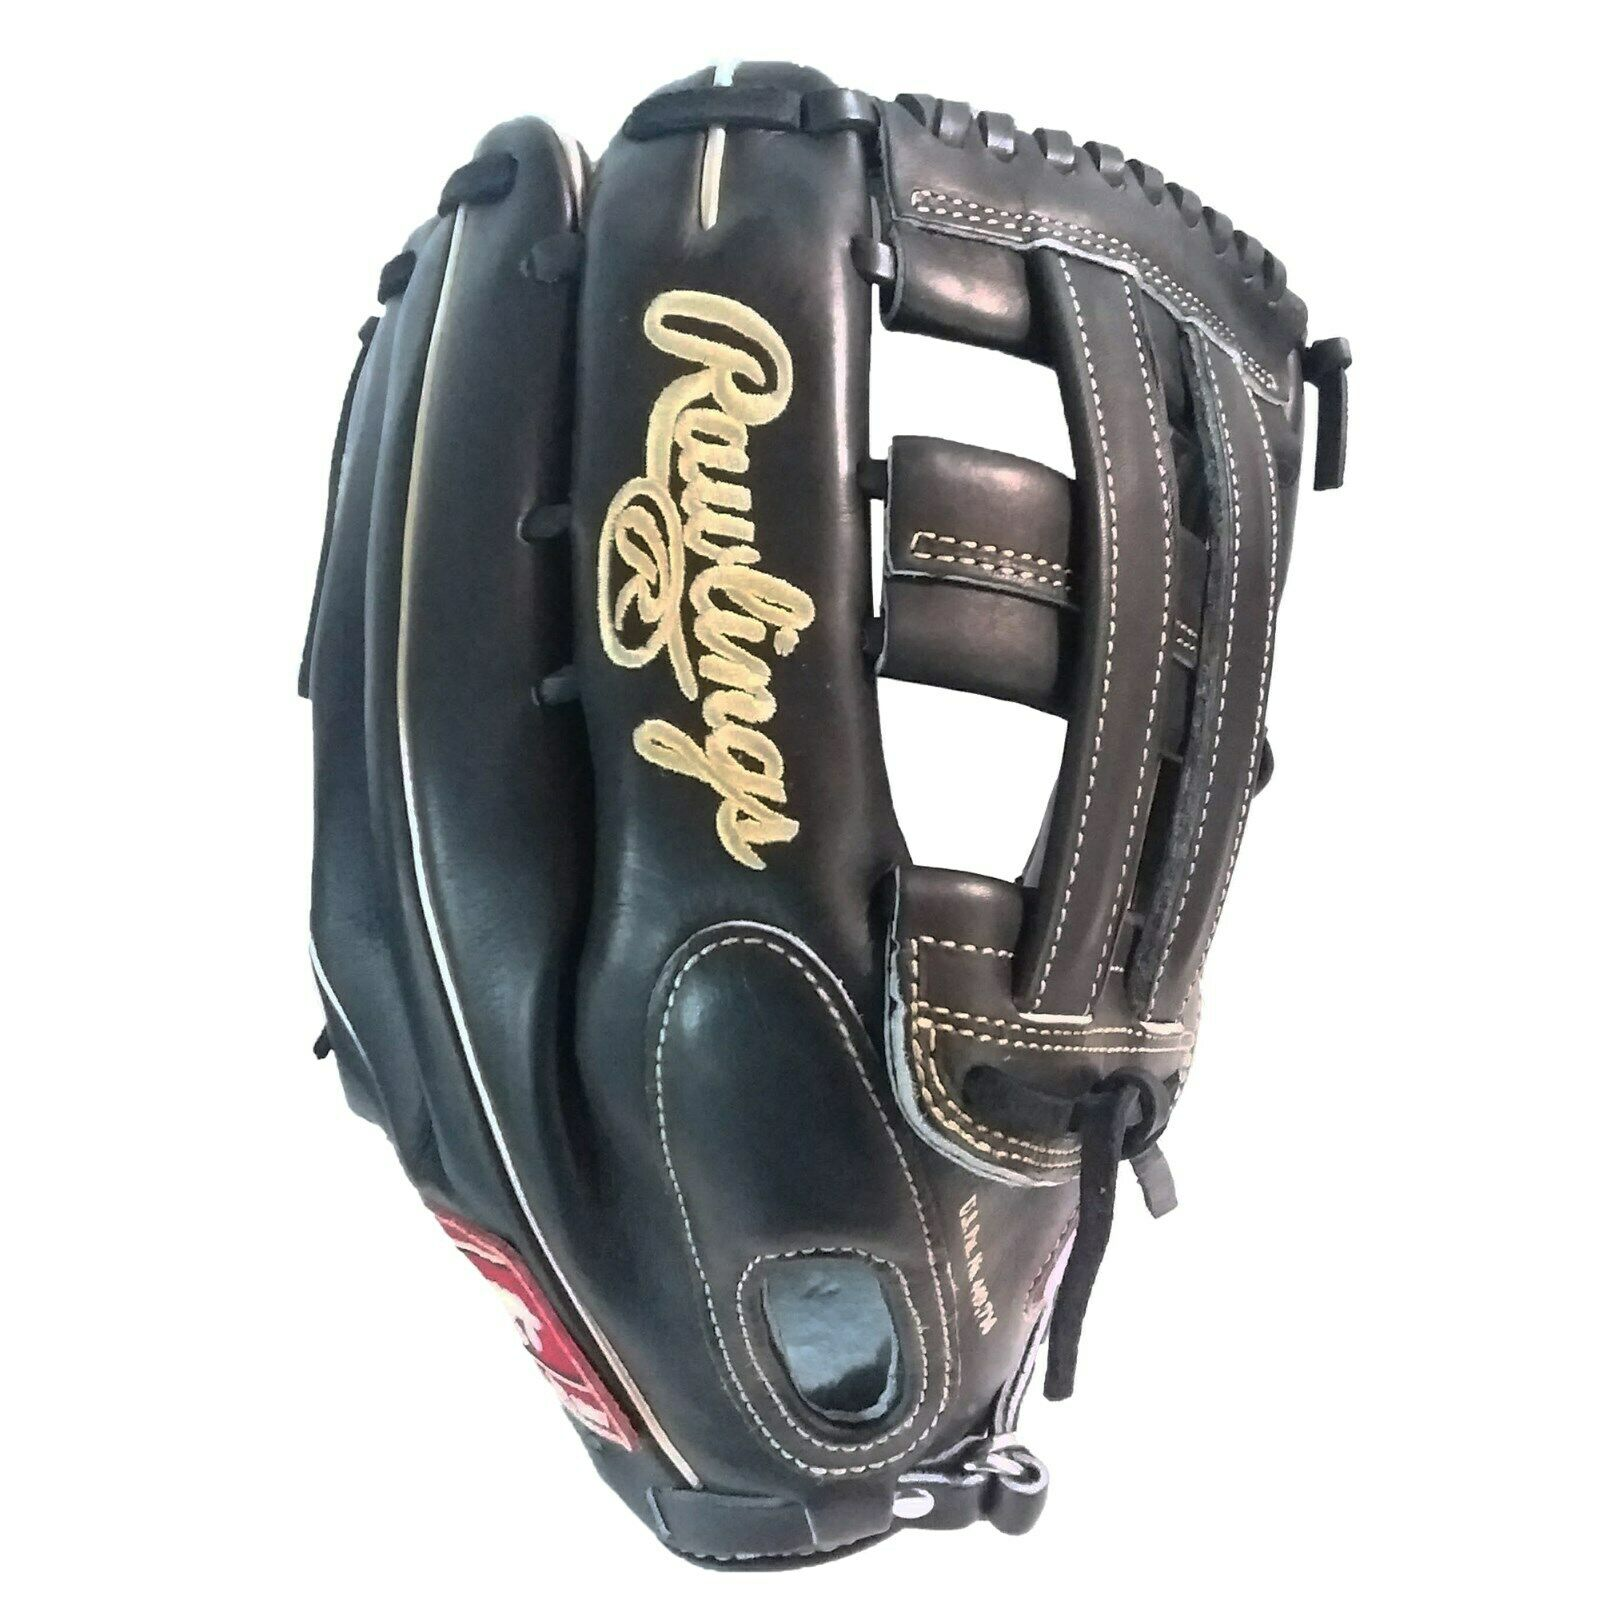 """RAWLINGS PRO ISSUE//STOCK Pro Preferred 12.75/"""" Right Hand Throw-PROS27HFBPRO #10"""